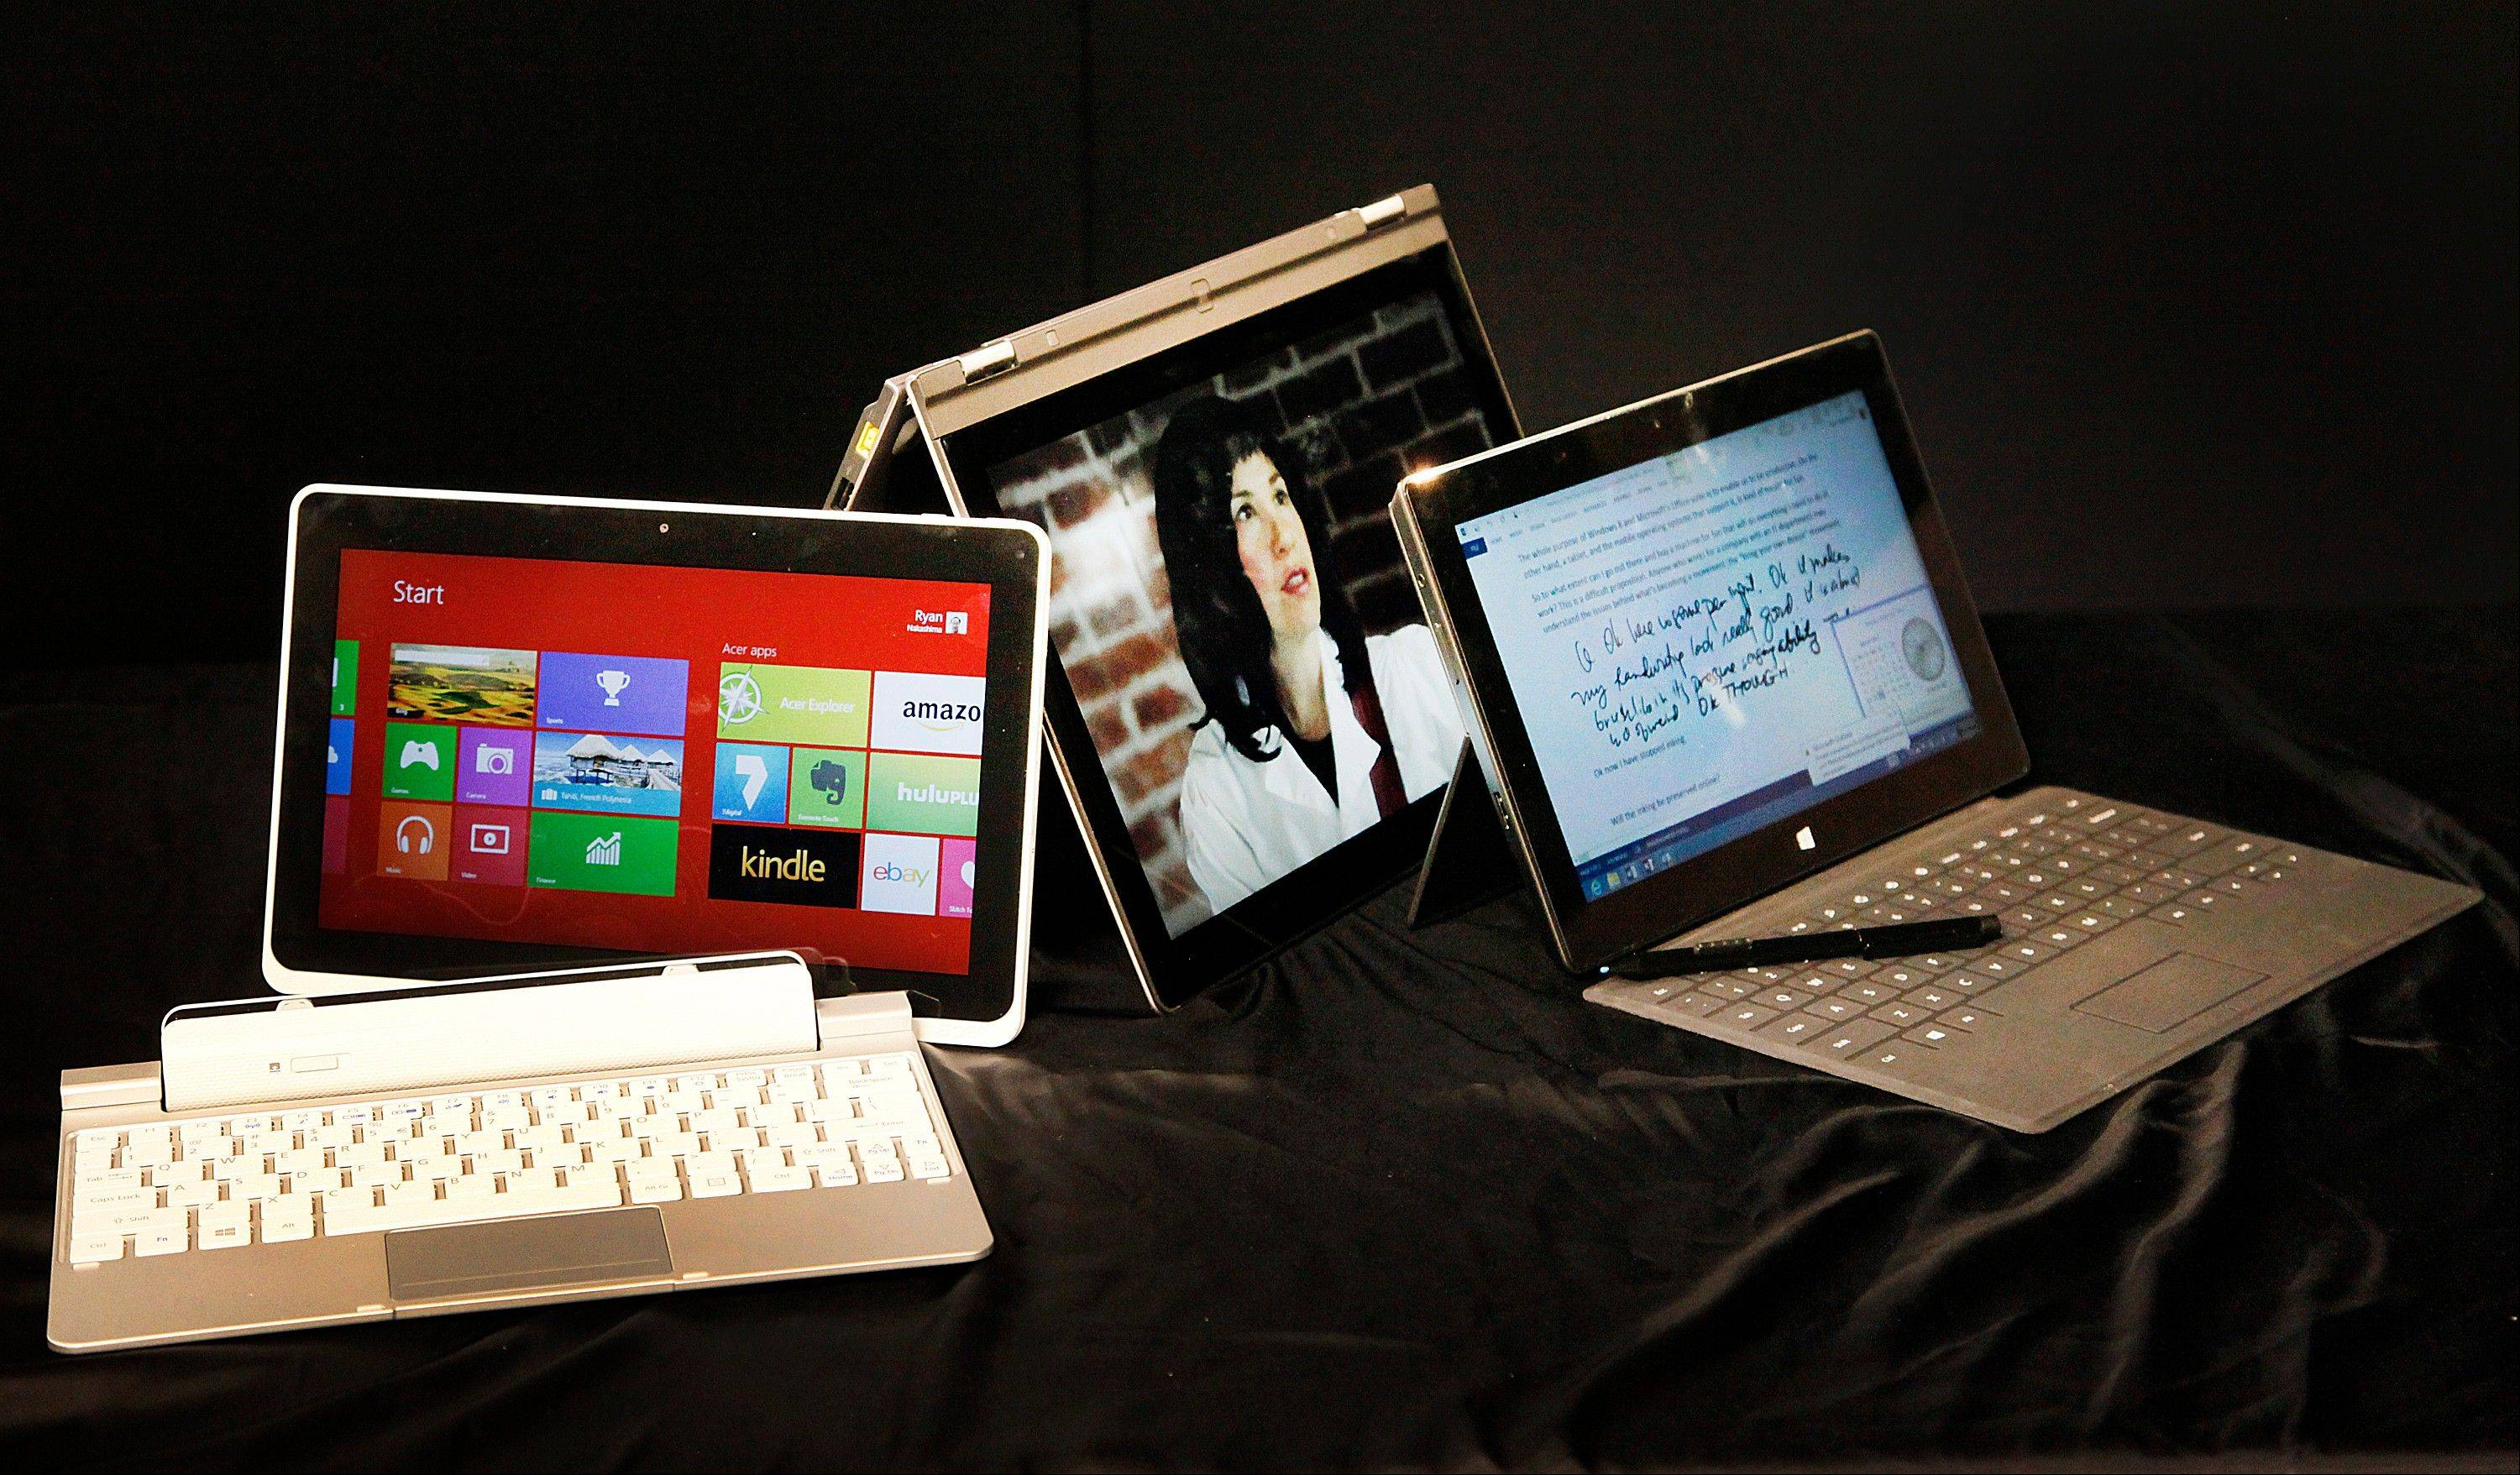 This photo taken Tuesday March 26, 2013 shows three hybrid computers running on Windows 8, from left to right, the Iconia W510 by Acer, the Yoga 13 by Lenovo and the Surface Pro by Microsoft, in Los Angeles. Since Windows 8�s debut in October, there have been a range of hot-looking devices that try to combine elements of tablets and traditional PCs.